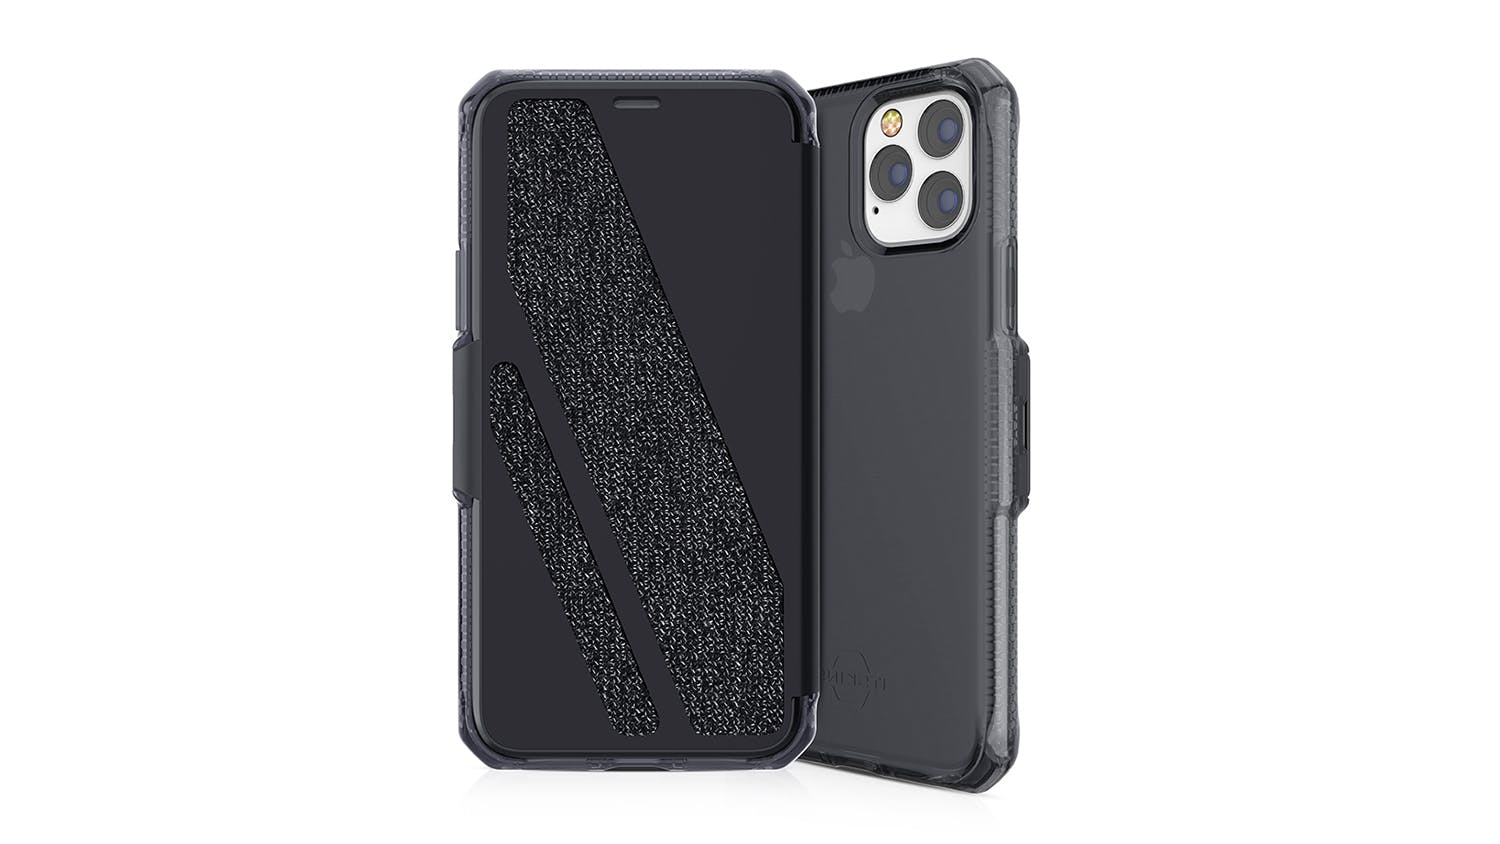 ITSKINS Spectrum Folio Case for iPhone 11 Pro Max - Black